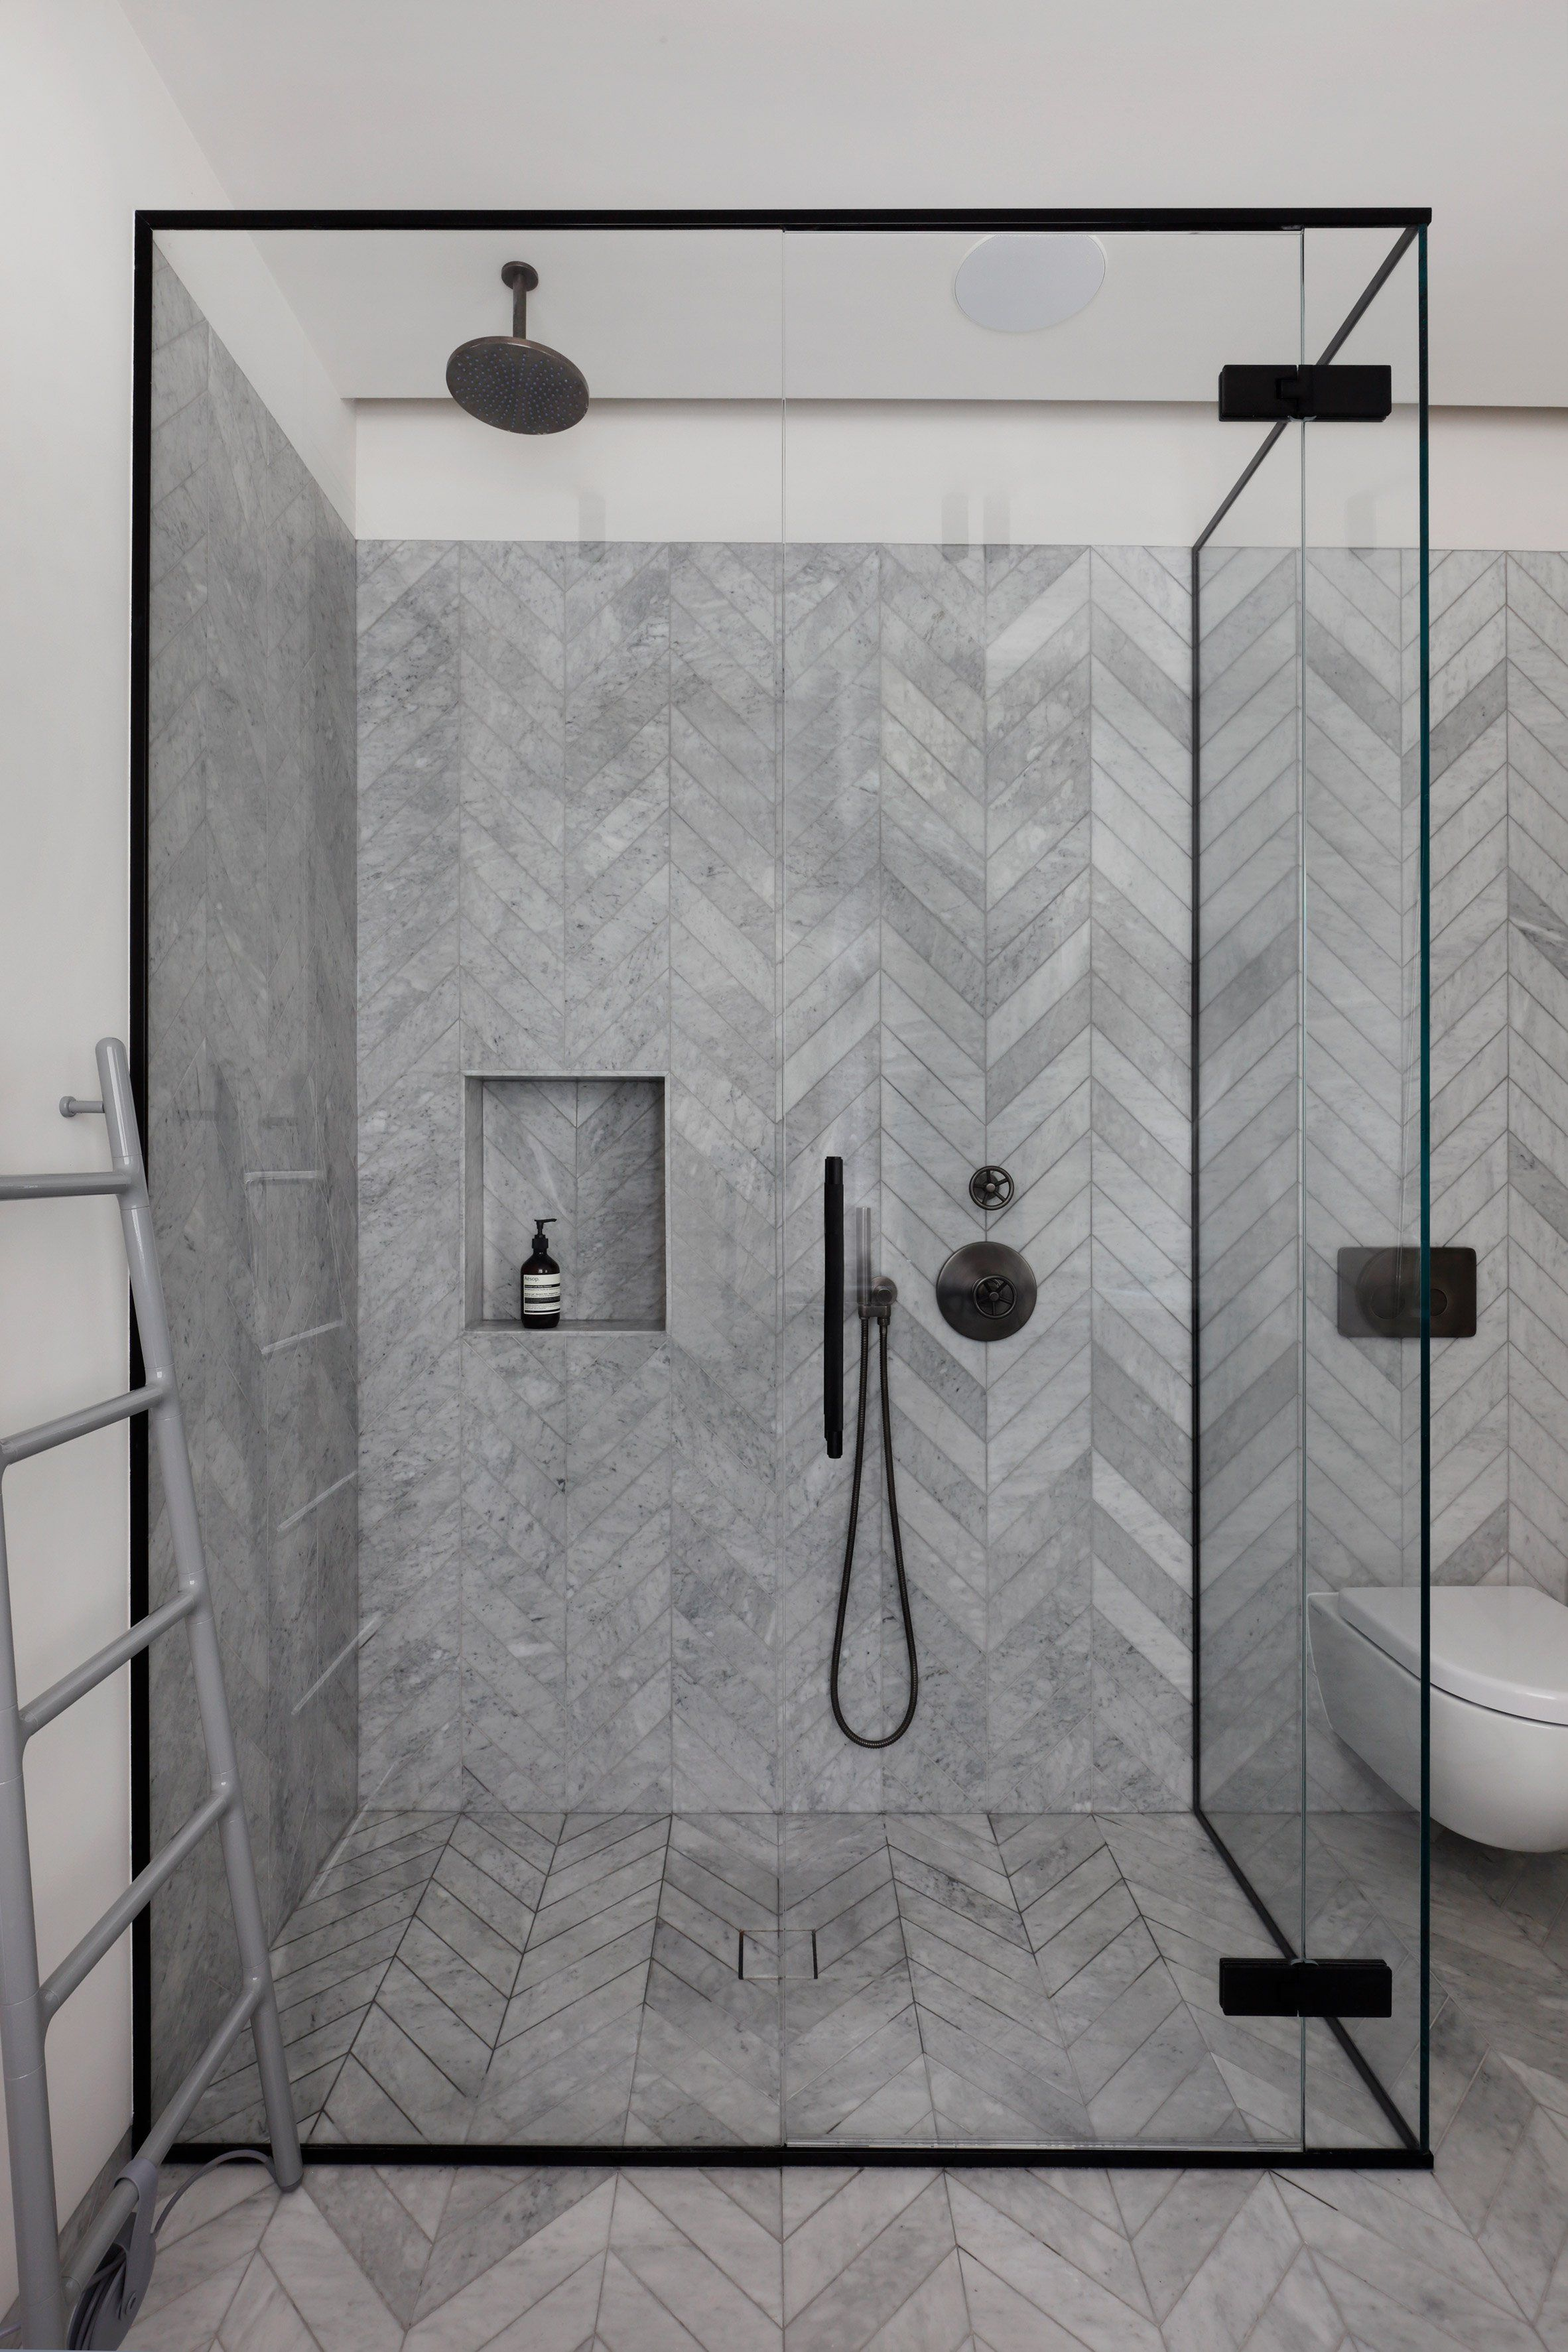 Mwai Uses Pale Grey Tones In West London Flat Renovation For Two Design Enthusiasts Bathroom Tile